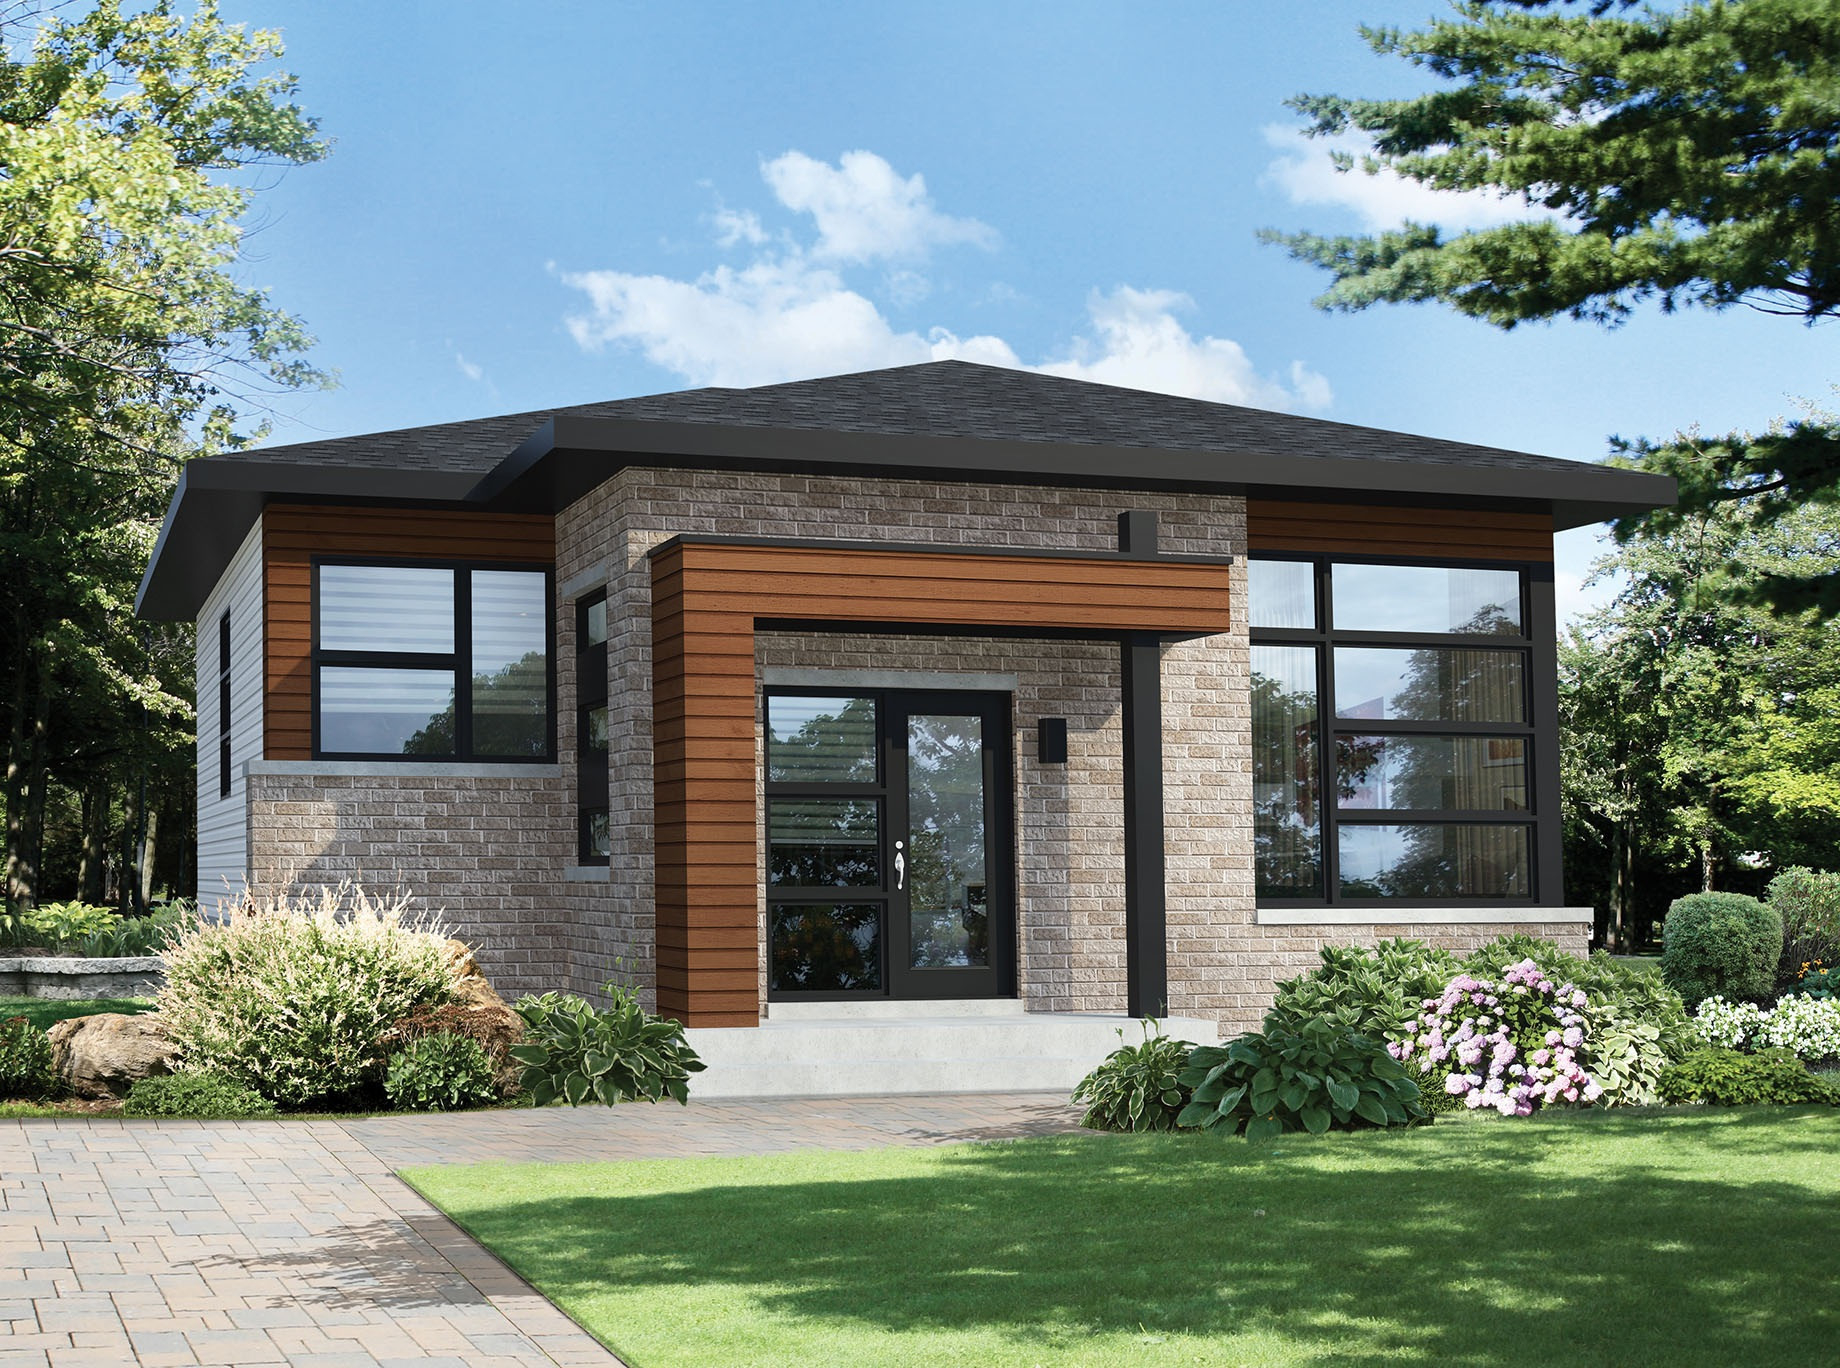 Two Bed House Elegant Two Bedroom Modern House Plan Pm Contemporary intended for Modern Two Bedroom House Plans